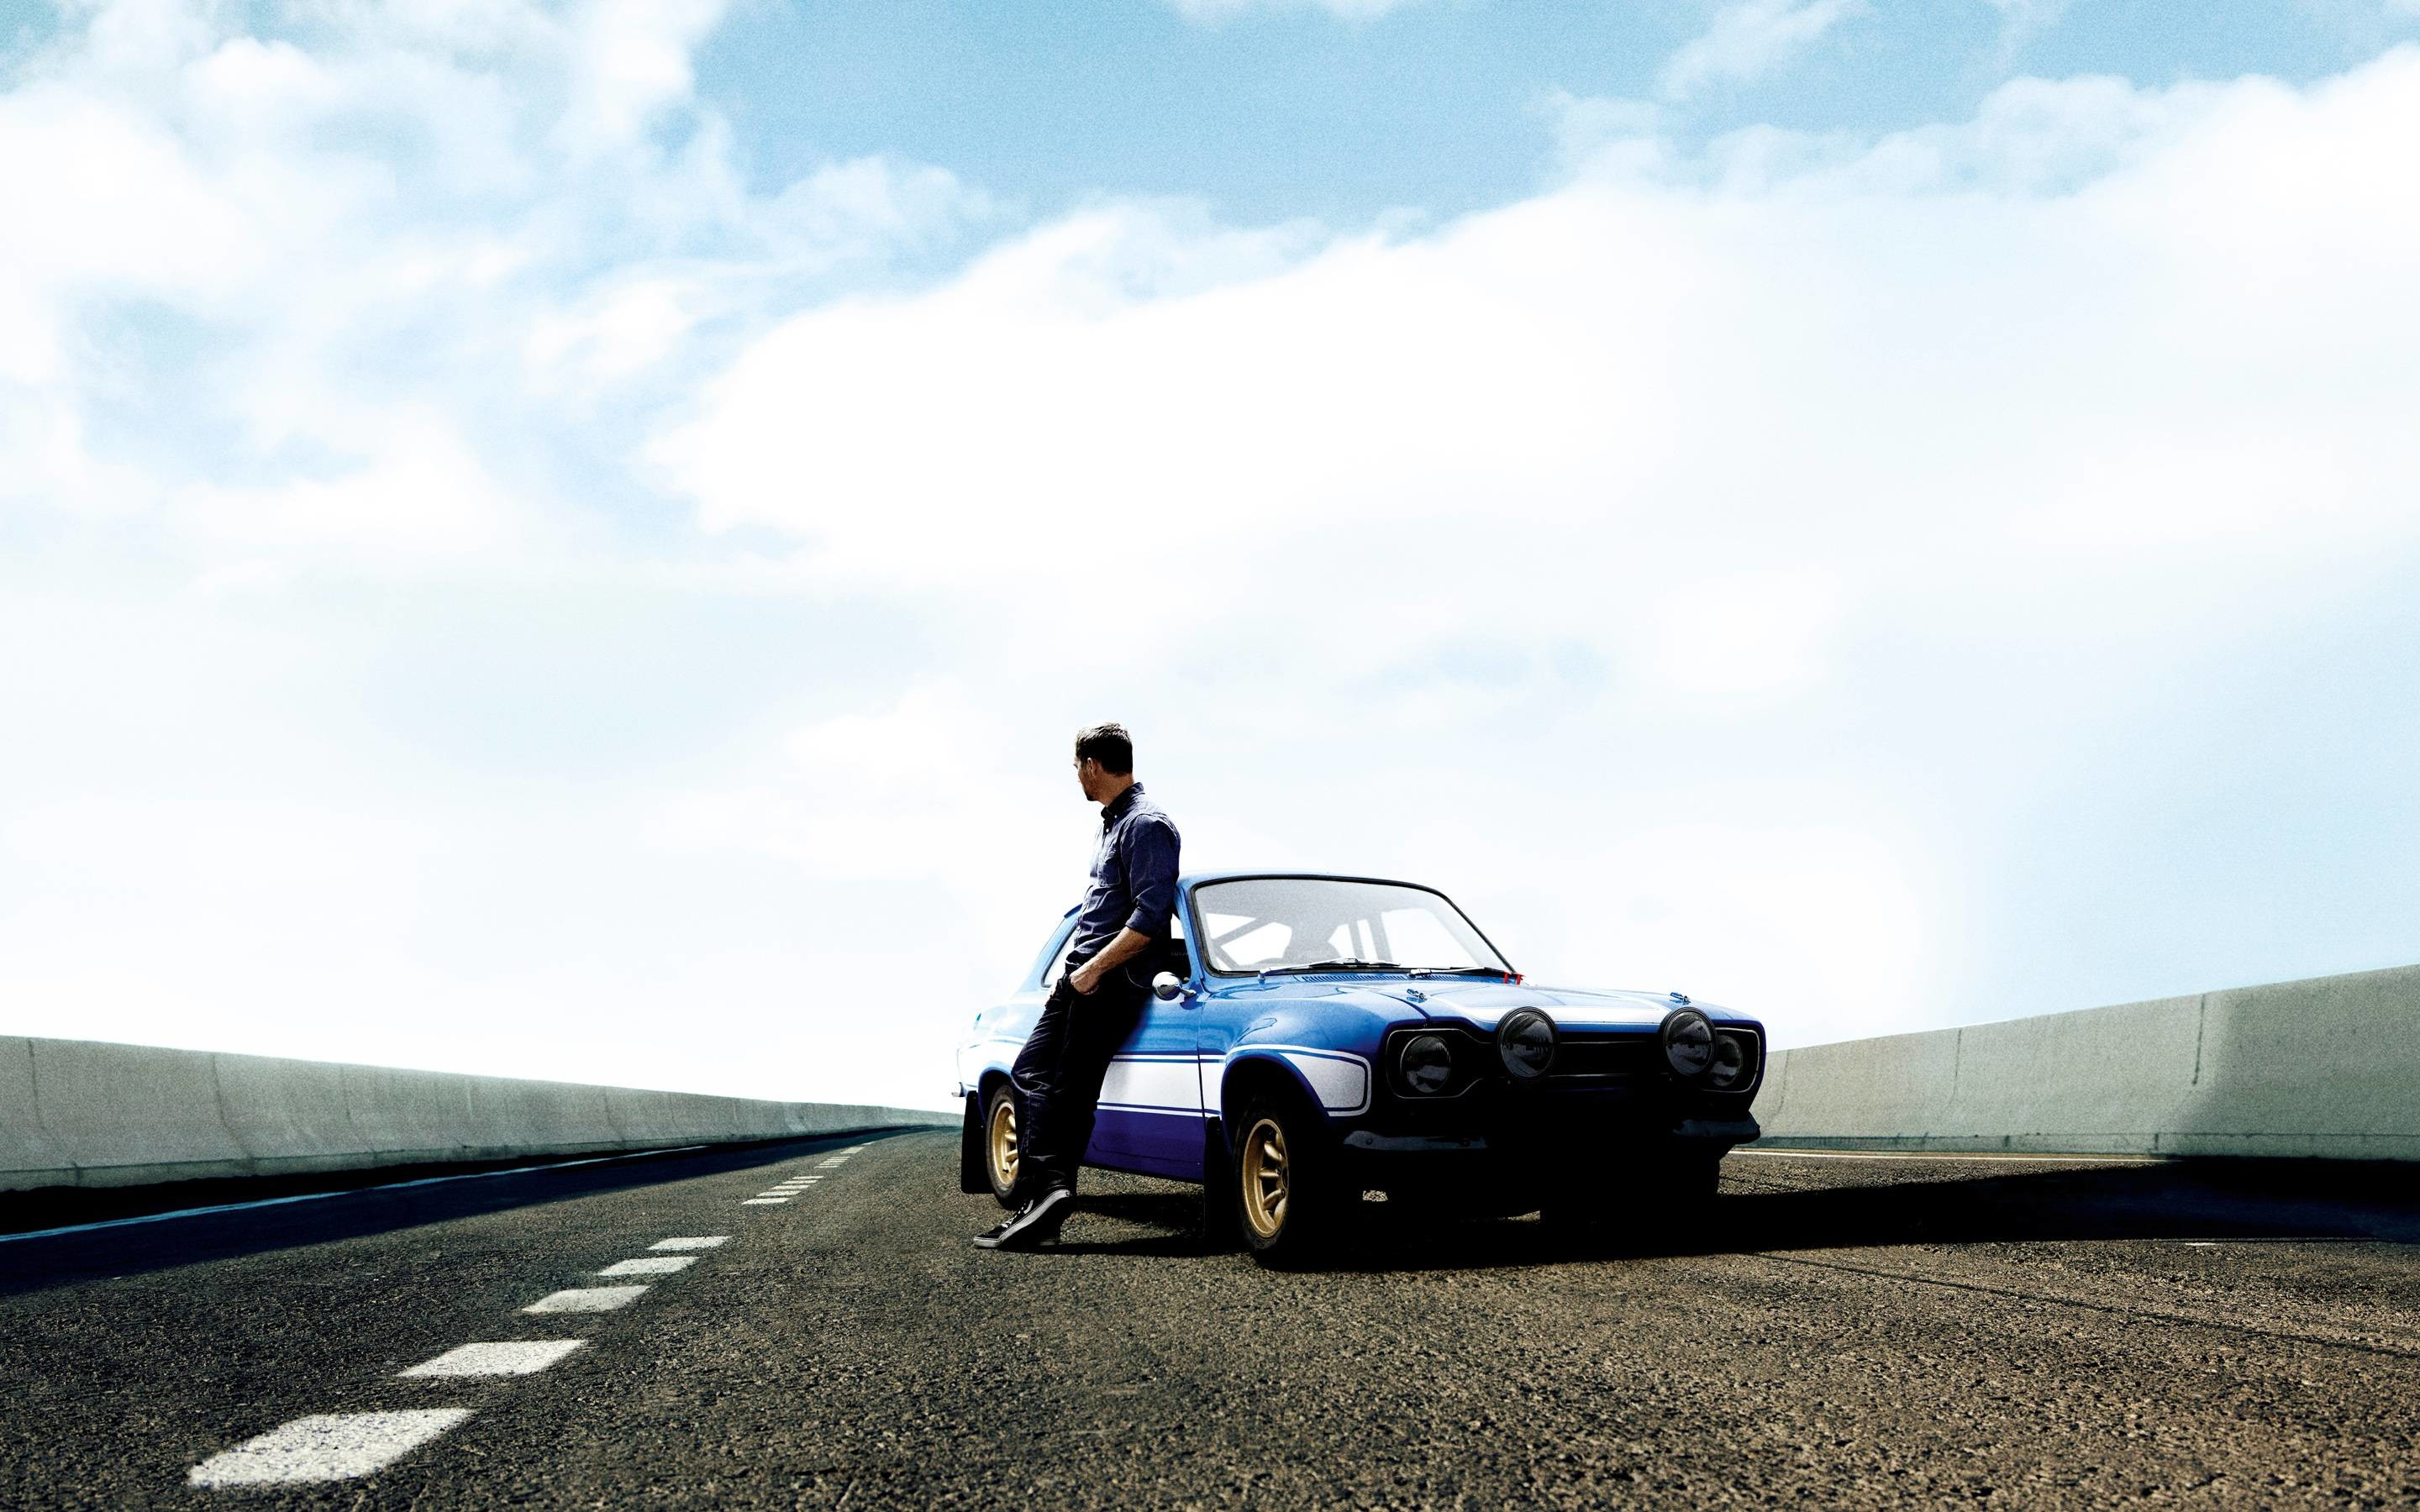 Fast and furious wallpaper wallpapertag - Furious 8 wallpaper ...